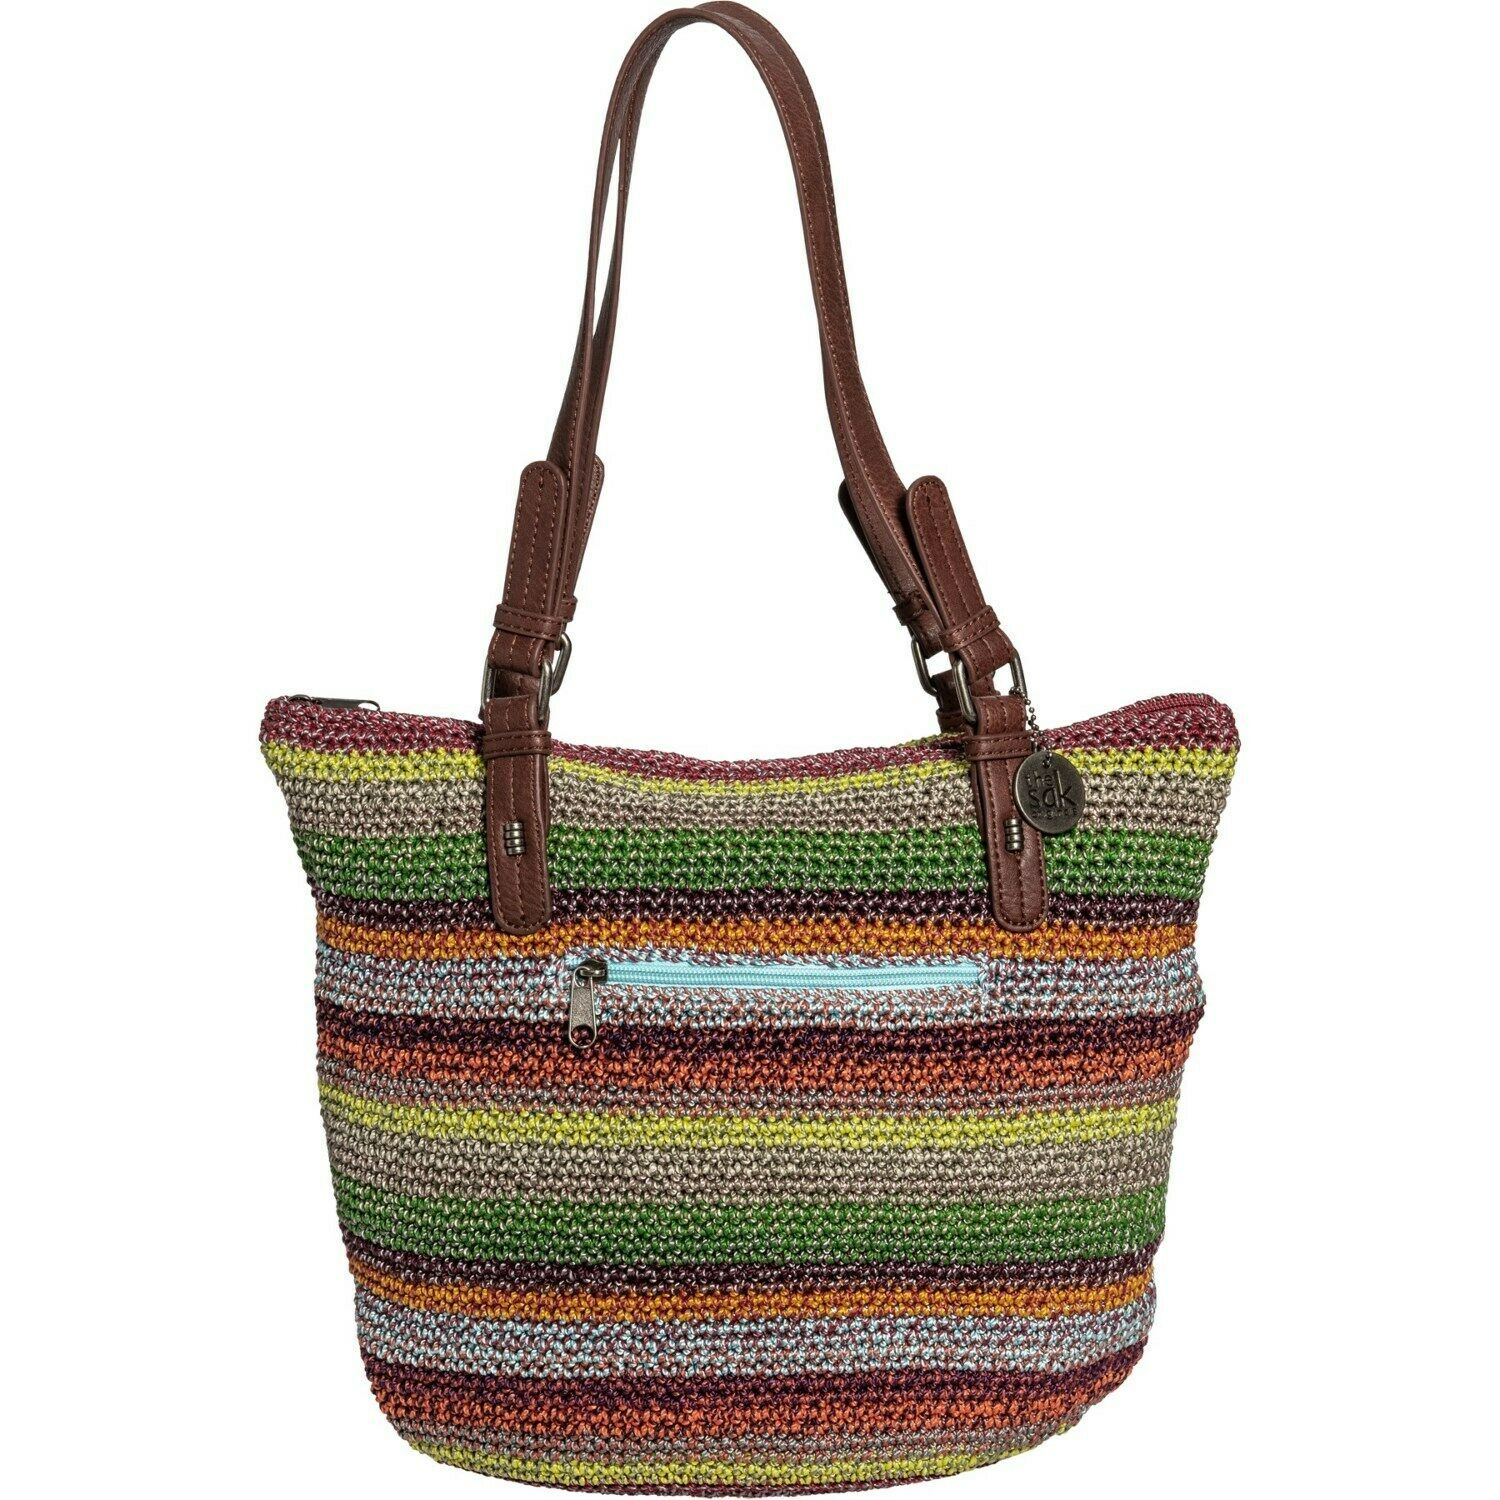 The Sak Crochet Alpine Zip Tote Bag (Style 108172) with Brown Leather Straps - $28.71